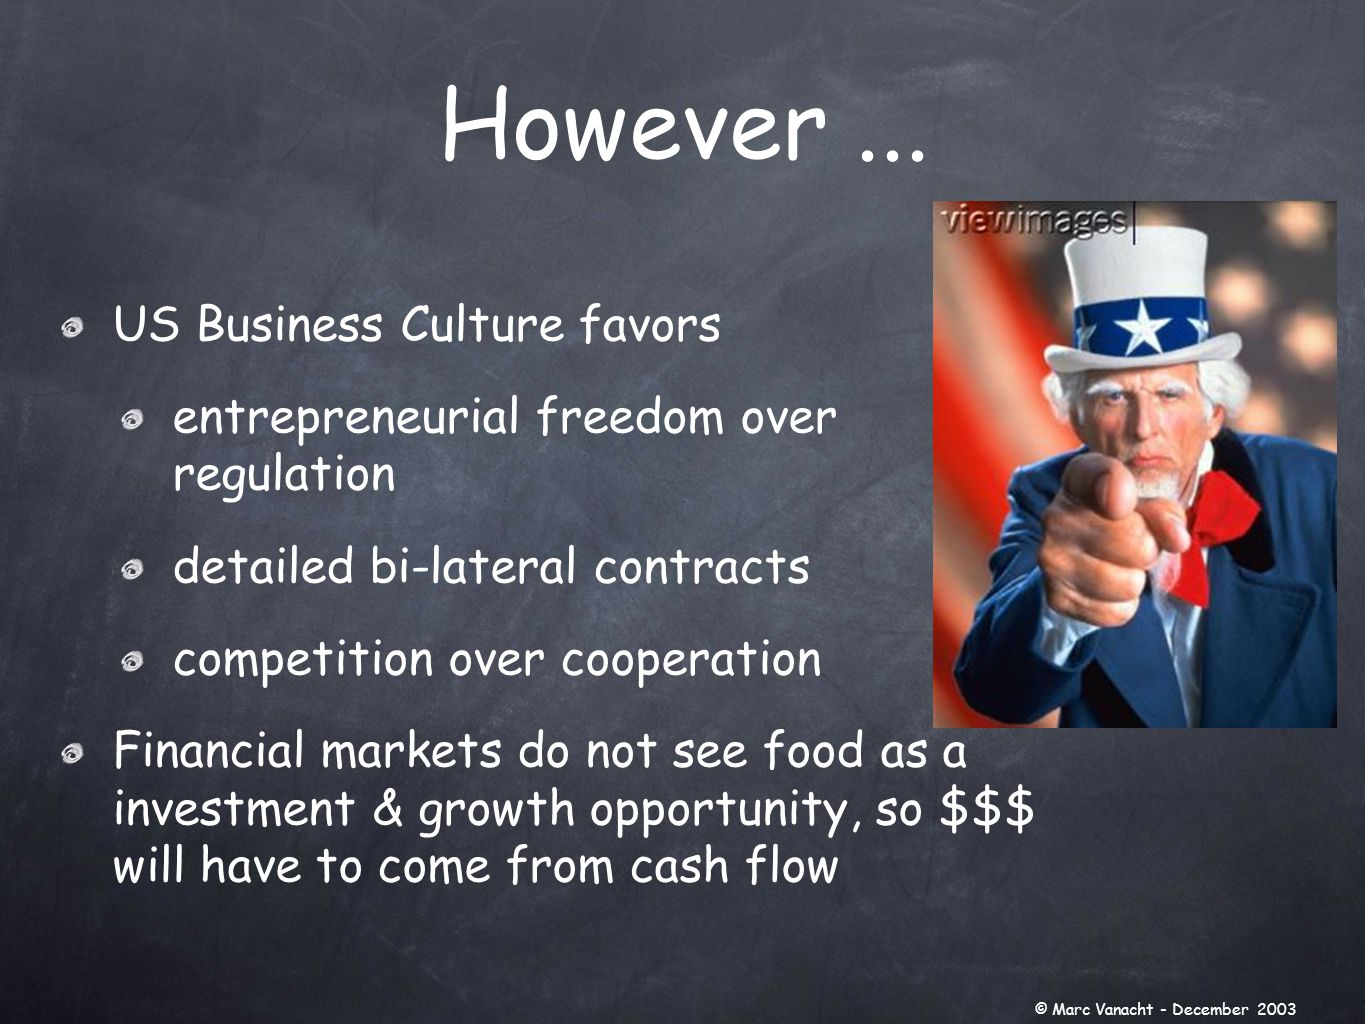 US Business Culture favors entrepreneurial freedom over regulation detailed bi-lateral contracts competition over cooperation Financial markets do not see food as a investment & growth opportunity, so $$$ will have to come from cash flow However...